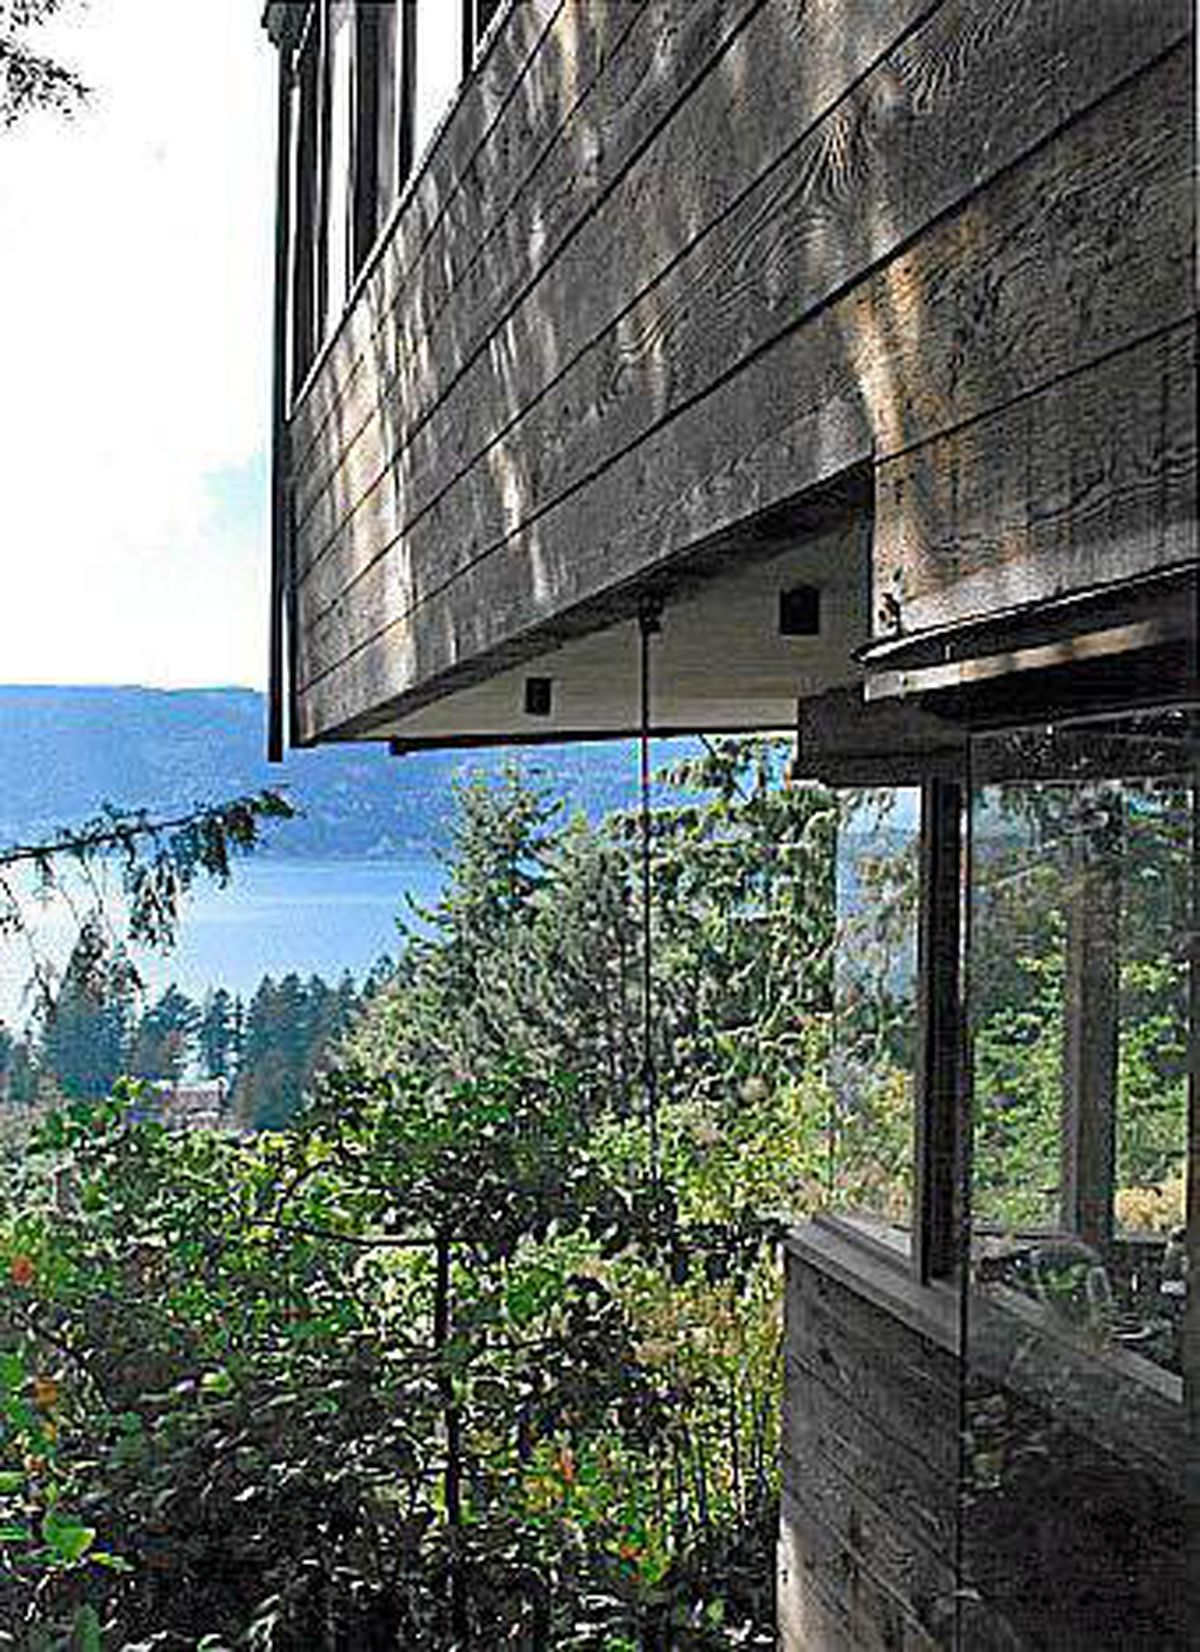 The Case house, designed by west coast architect Ron Thom in West Vancouver in 1965.